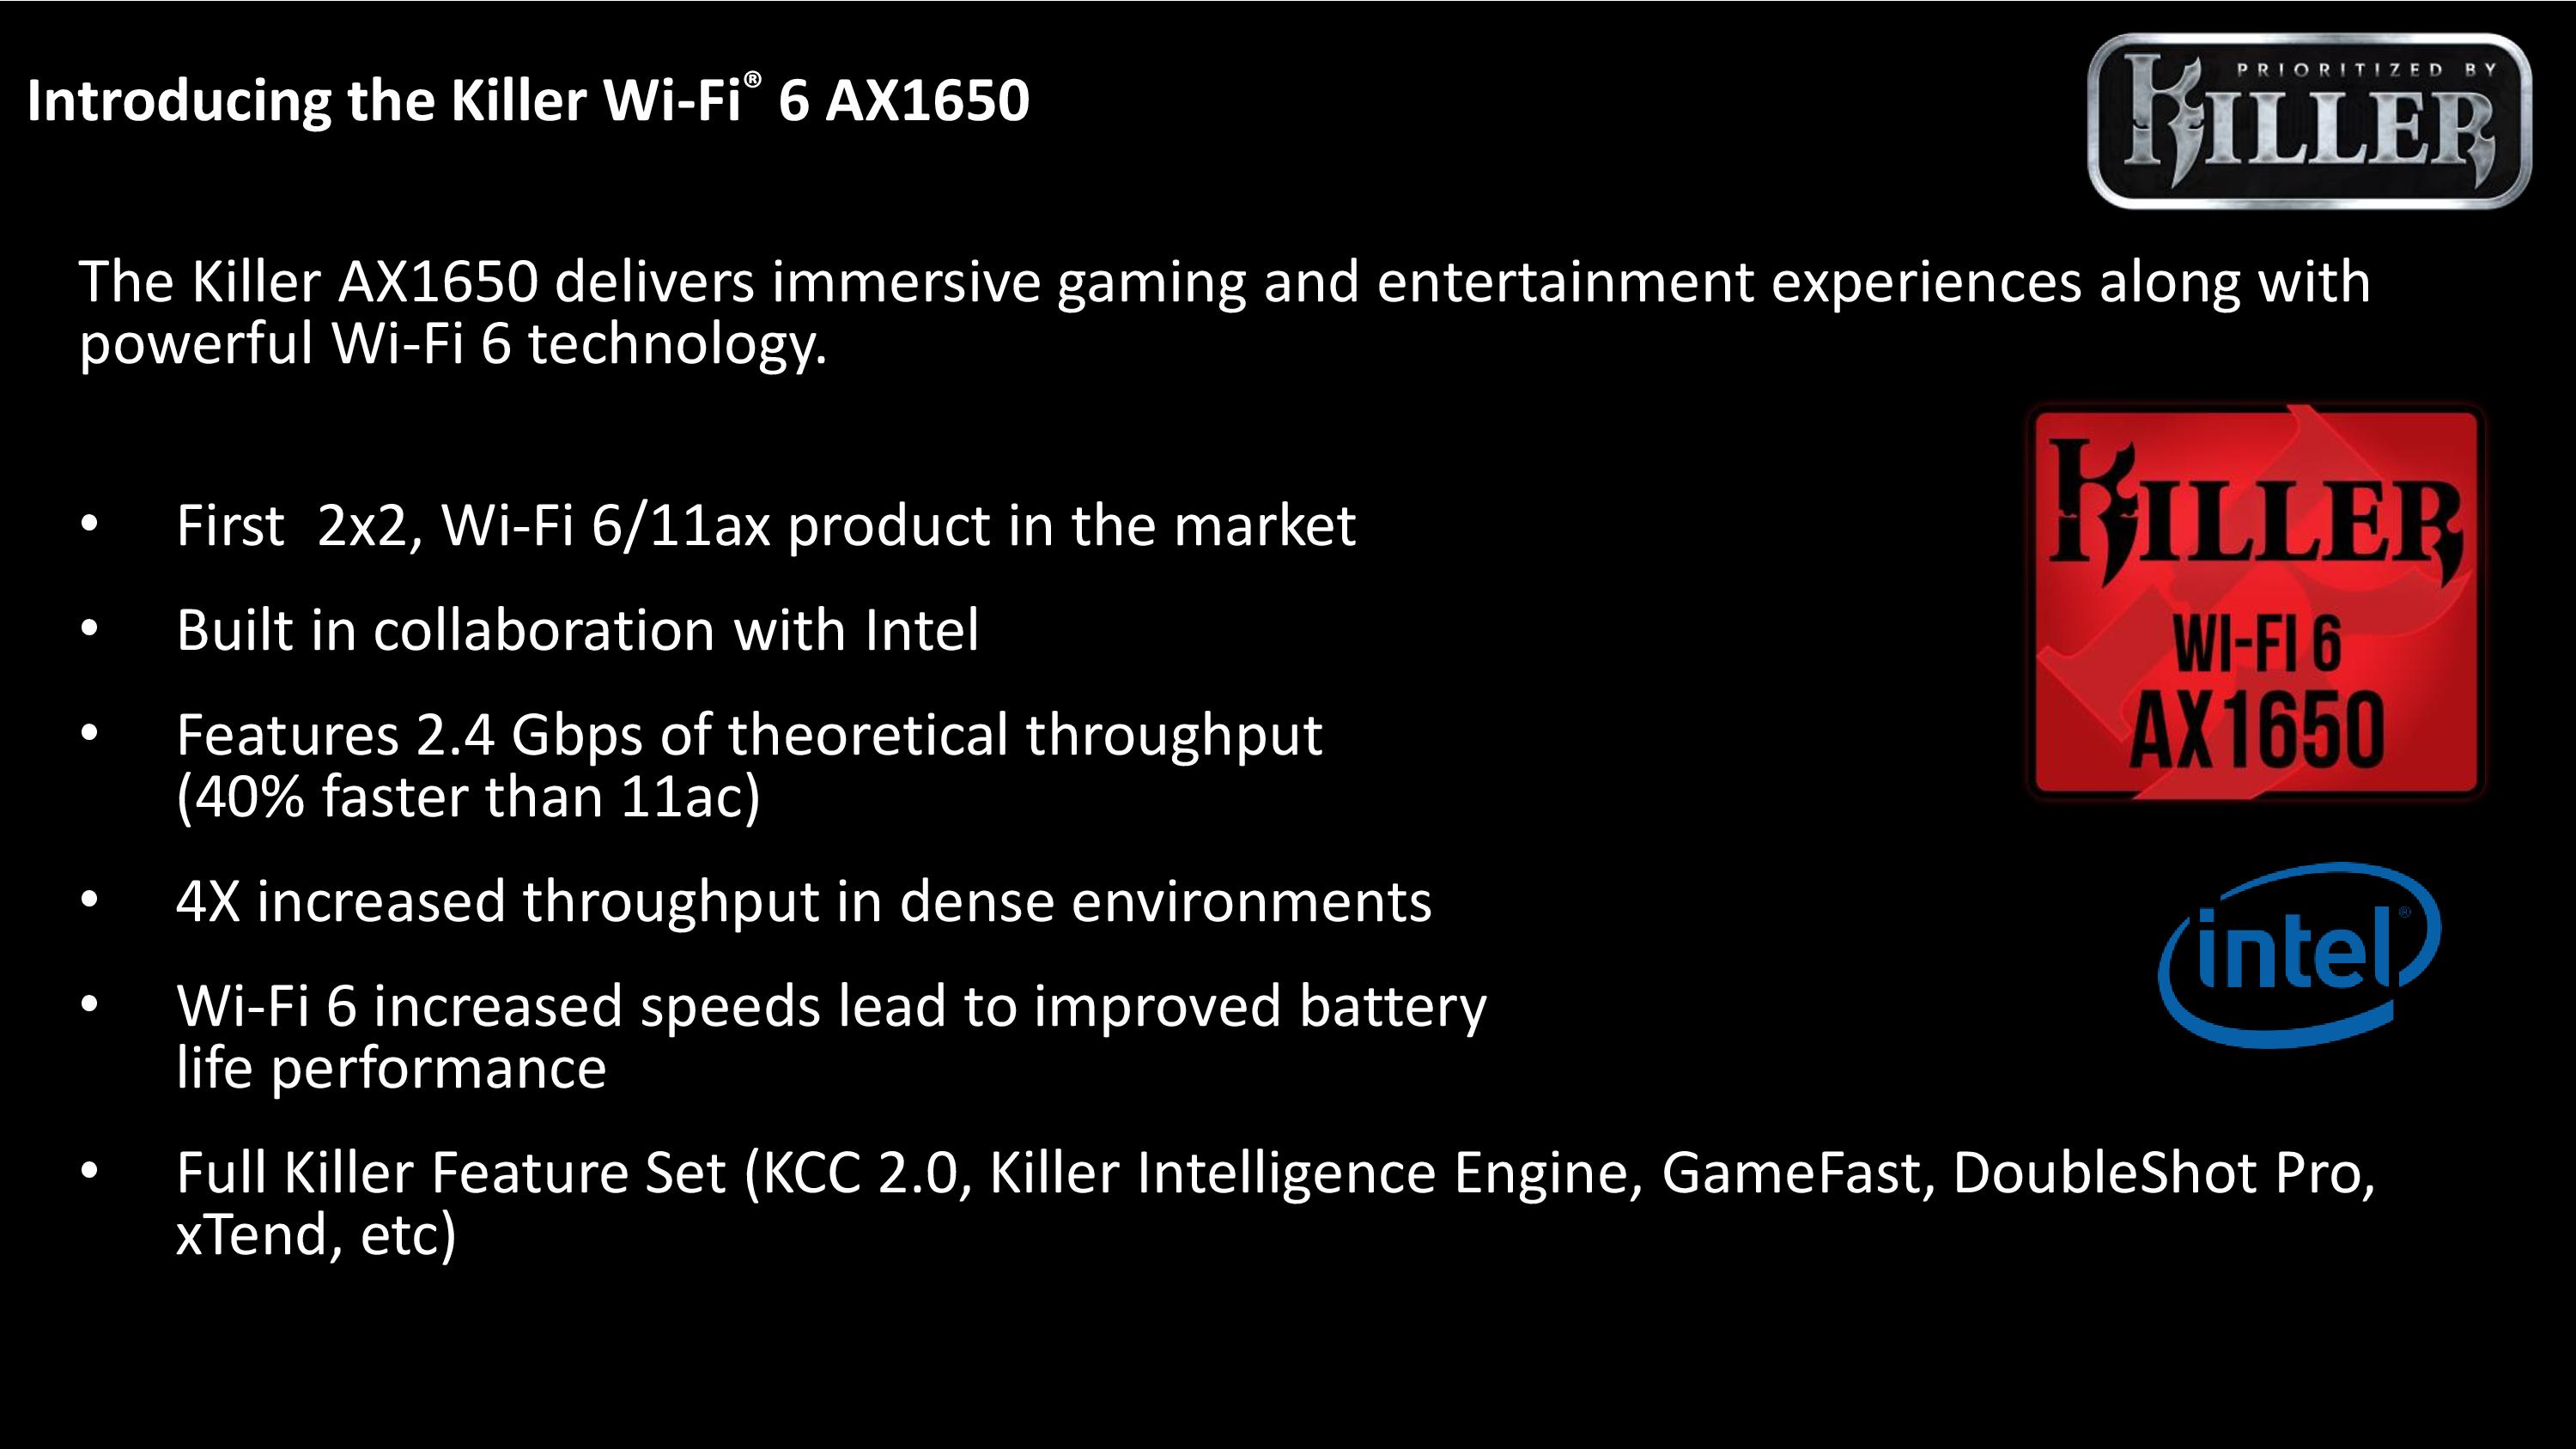 The Killer AX1650: A Wi-Fi 6 Chip Built on Intel